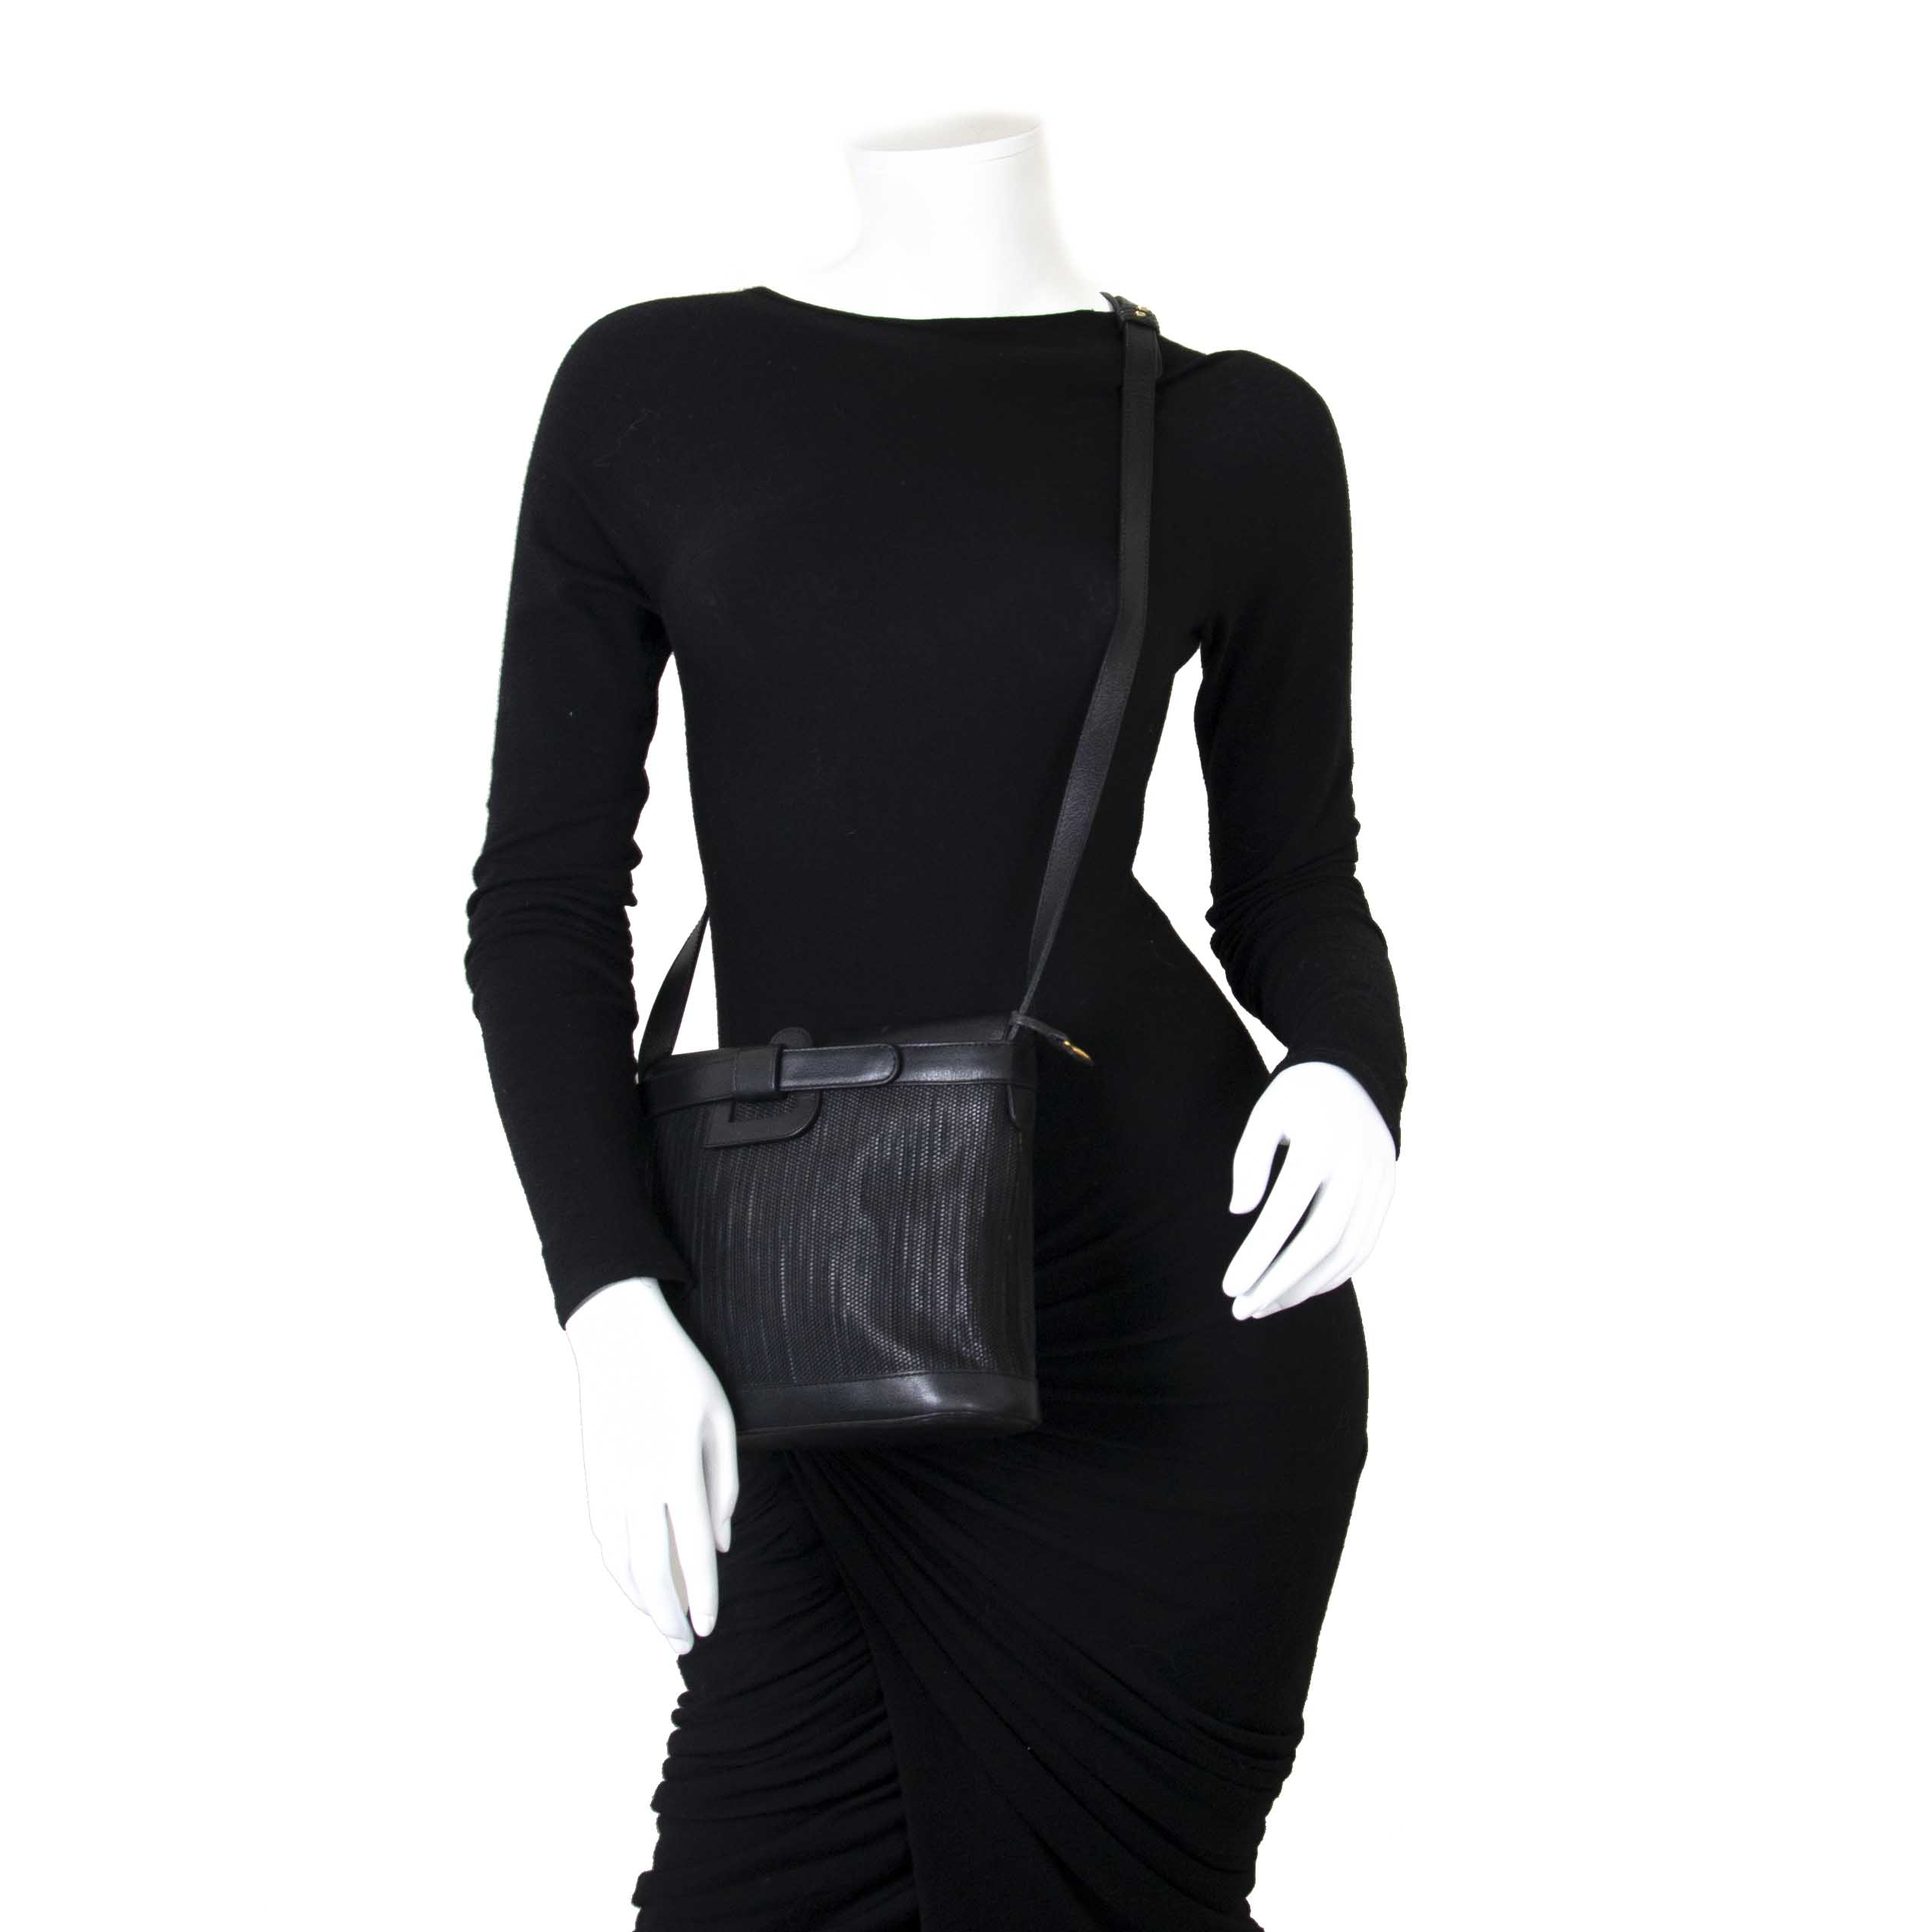 74d3b5ff4a ... Delvaux Black Toile De Cuir Shoulder Bag now for sale at labellov  vintage fashion webshop belgium